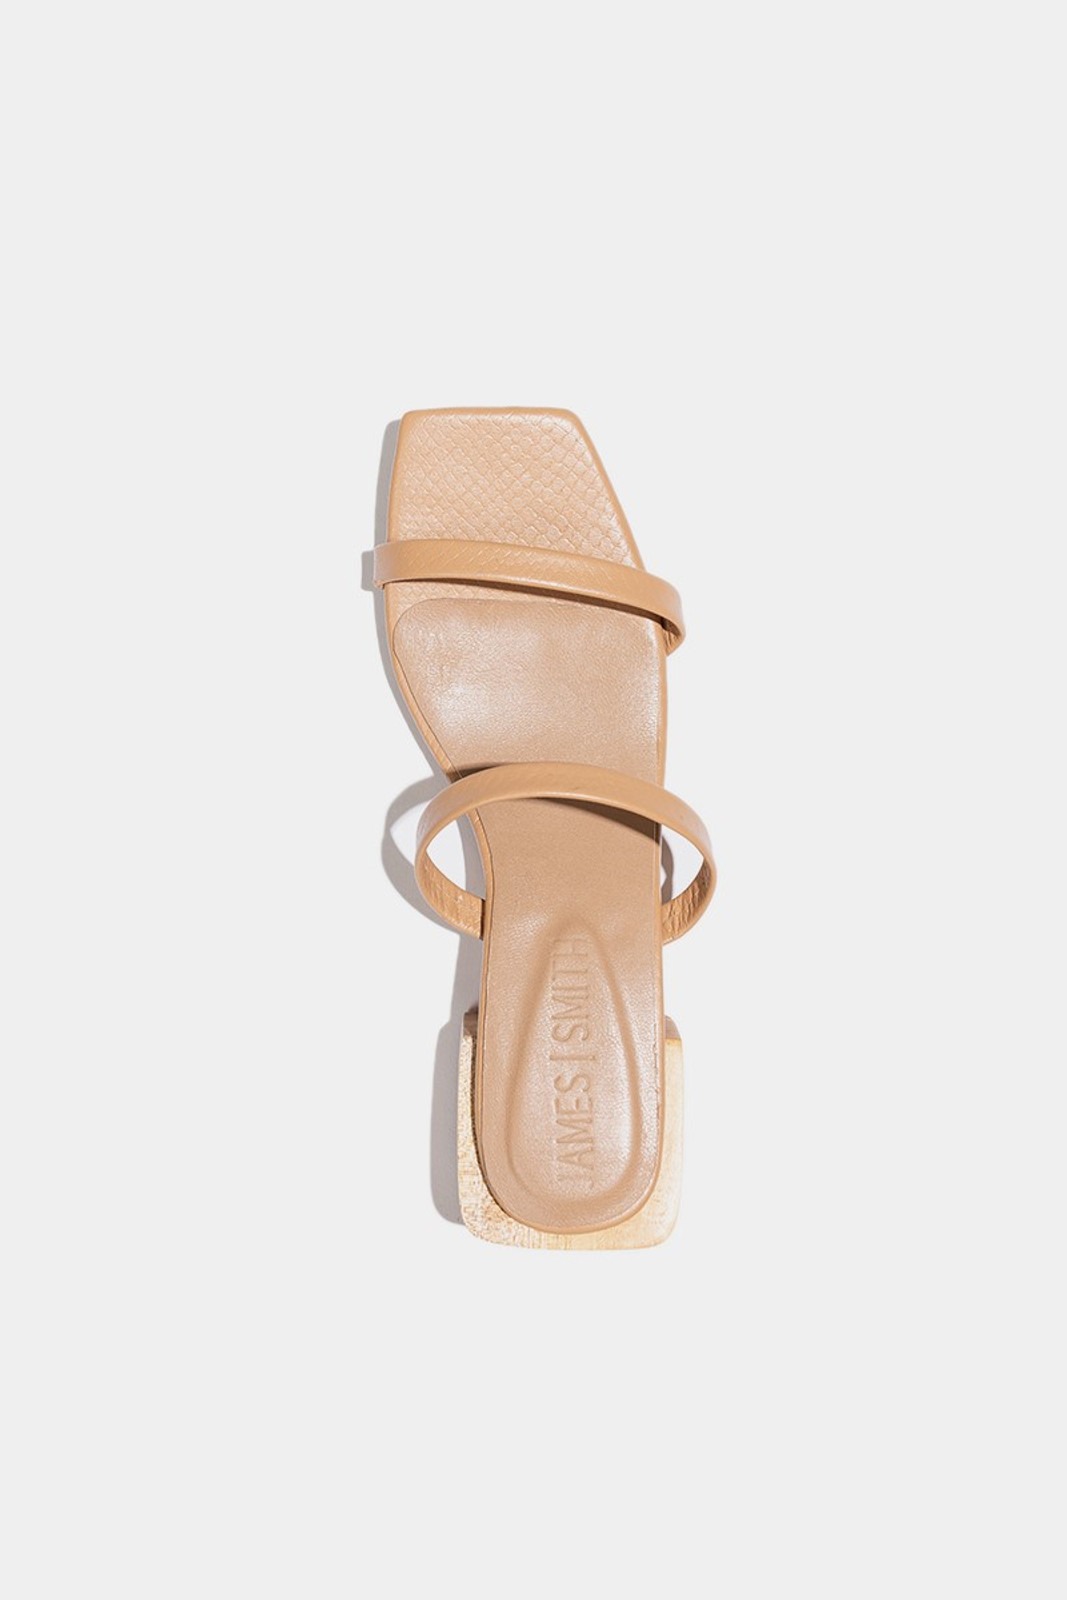 Elka Collective SALO SANDAL Neutrals  2